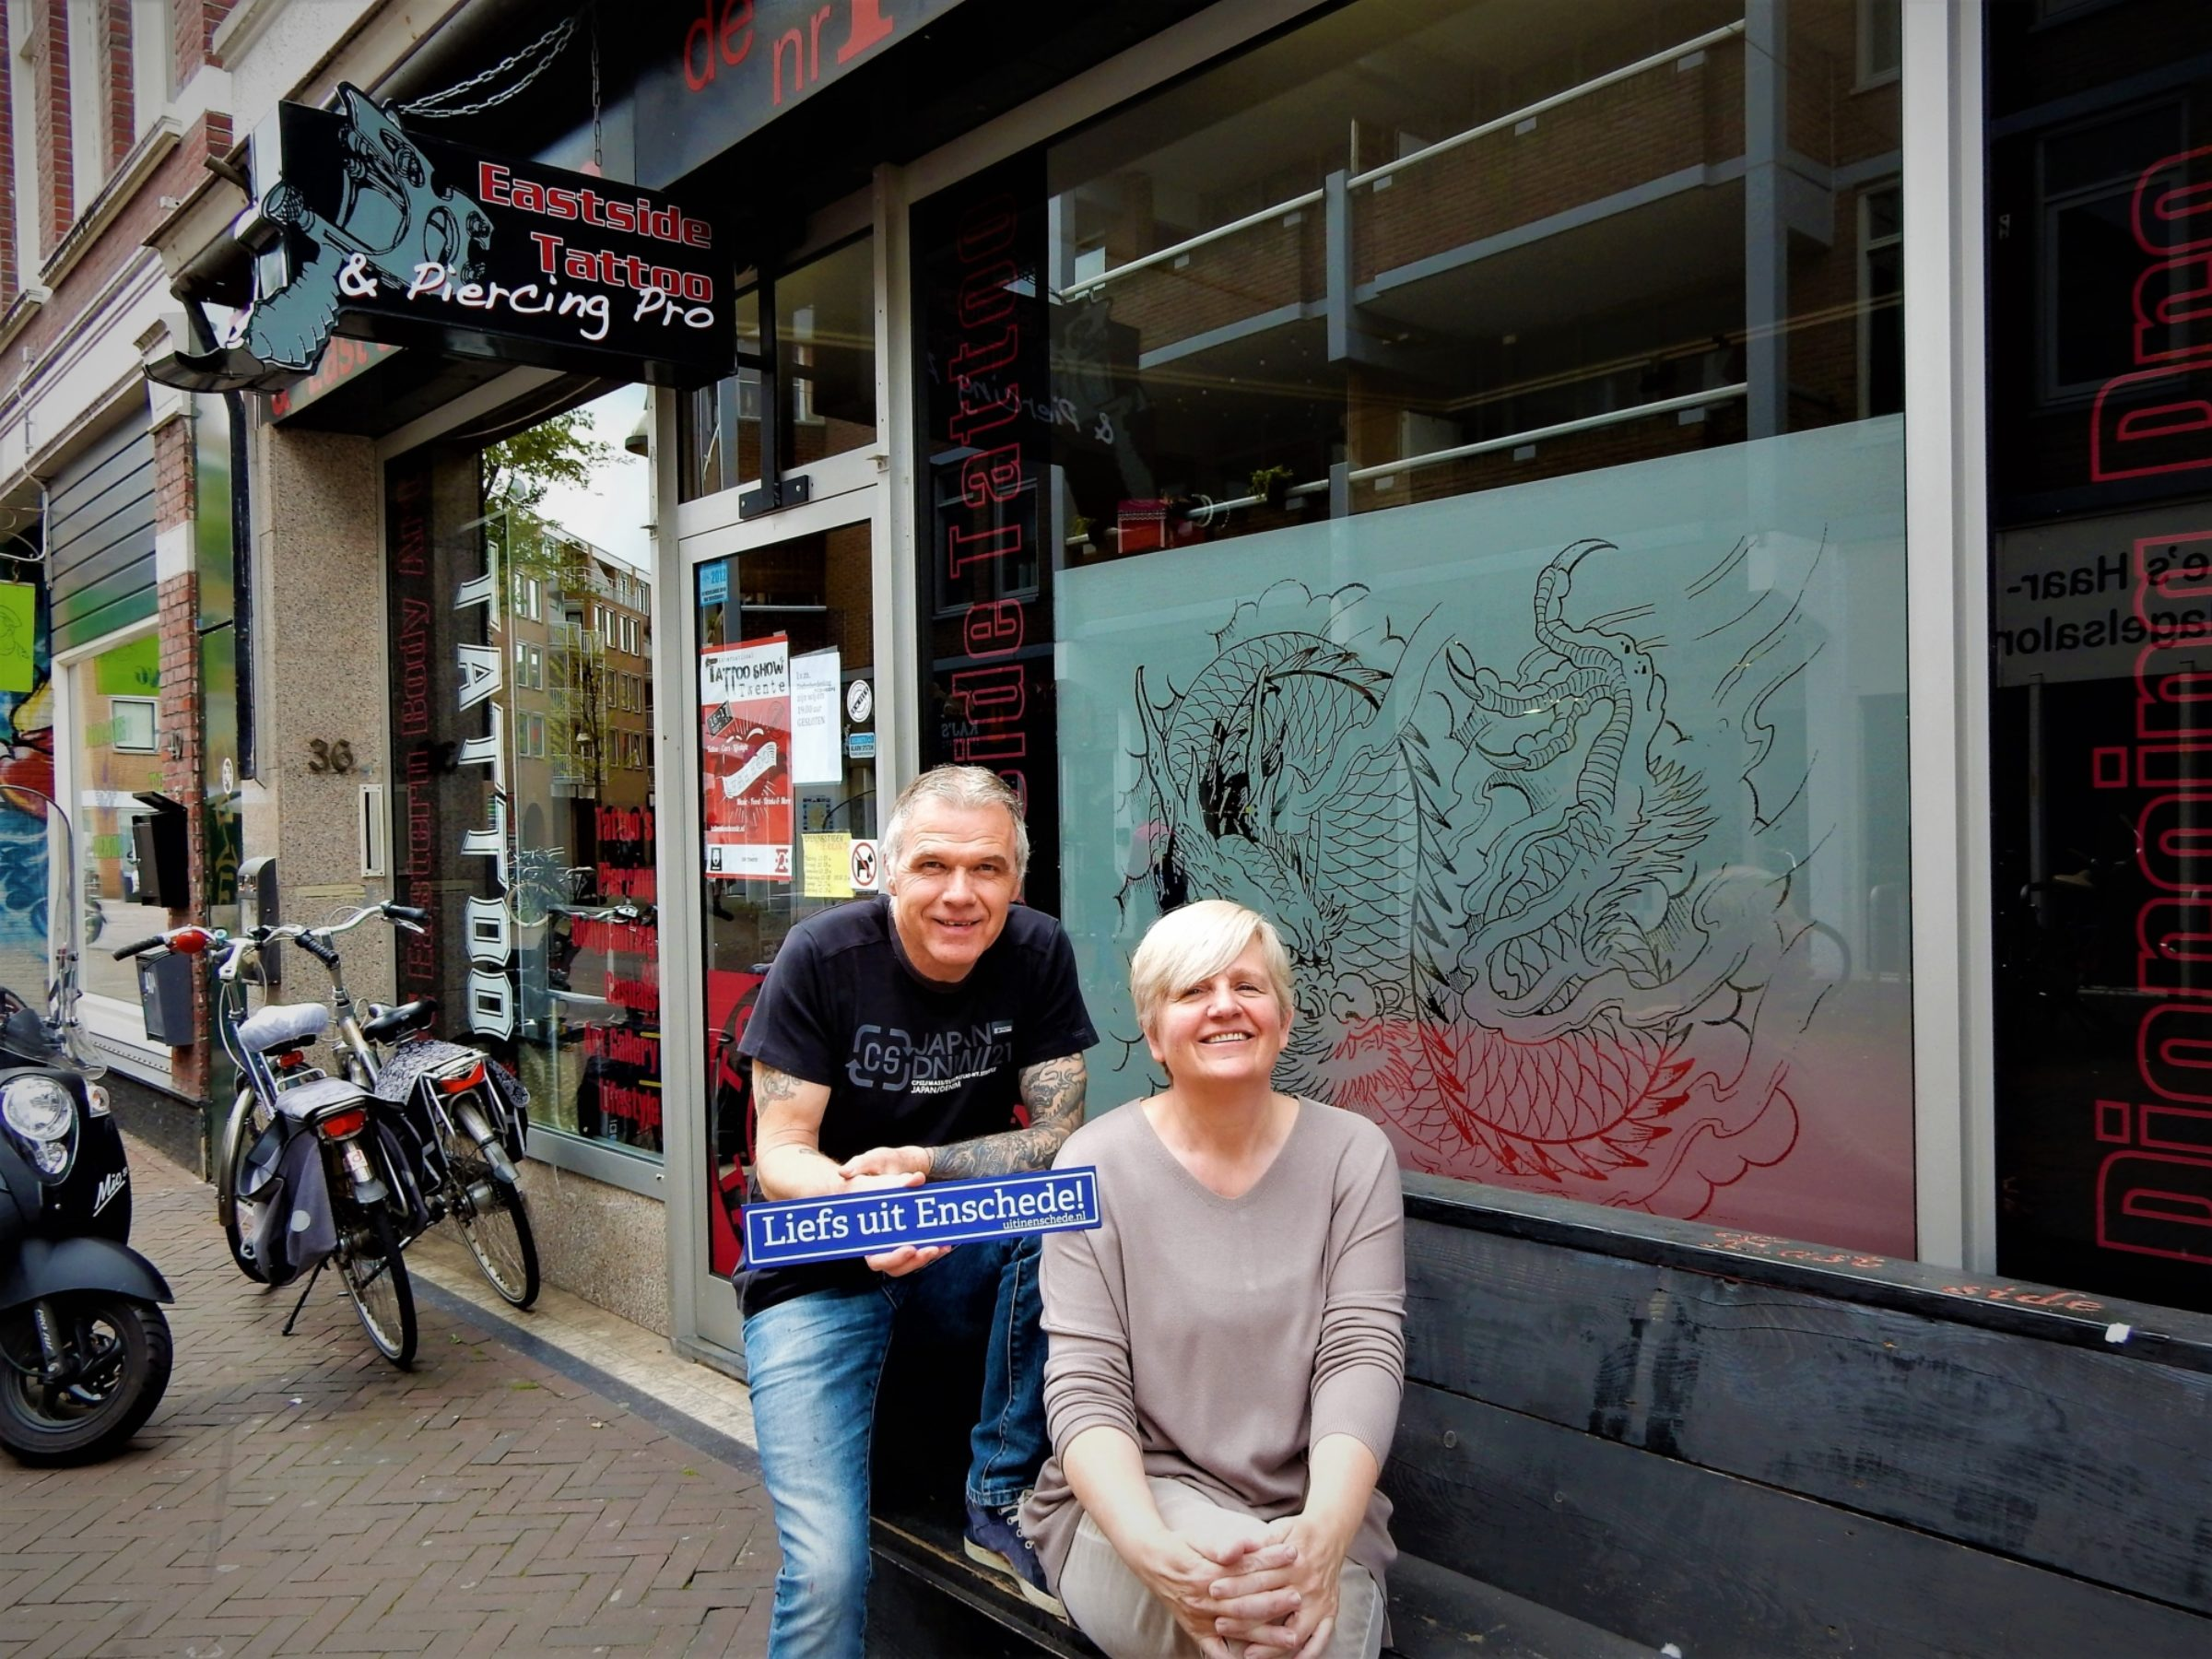 2017 Liefs Uit Enschede East Side Tattoo Marketing En Campagnes 2